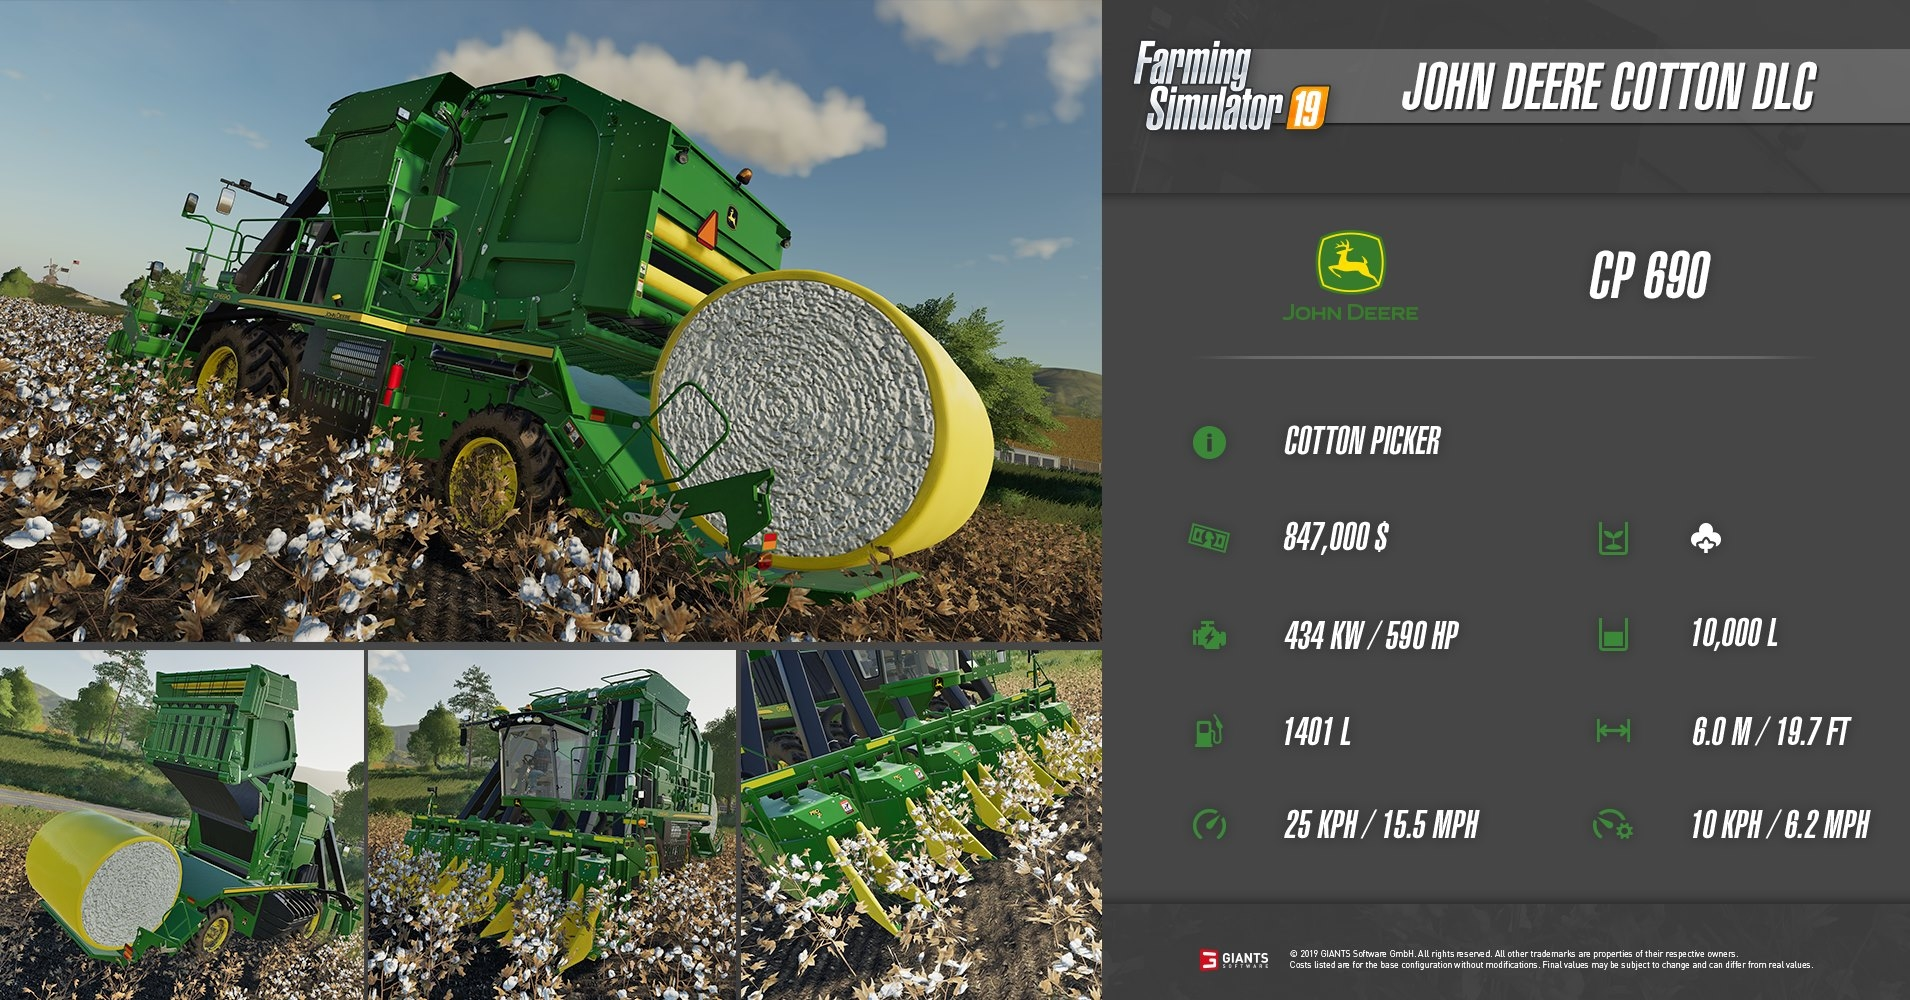 [DLC] John Deere Cotton